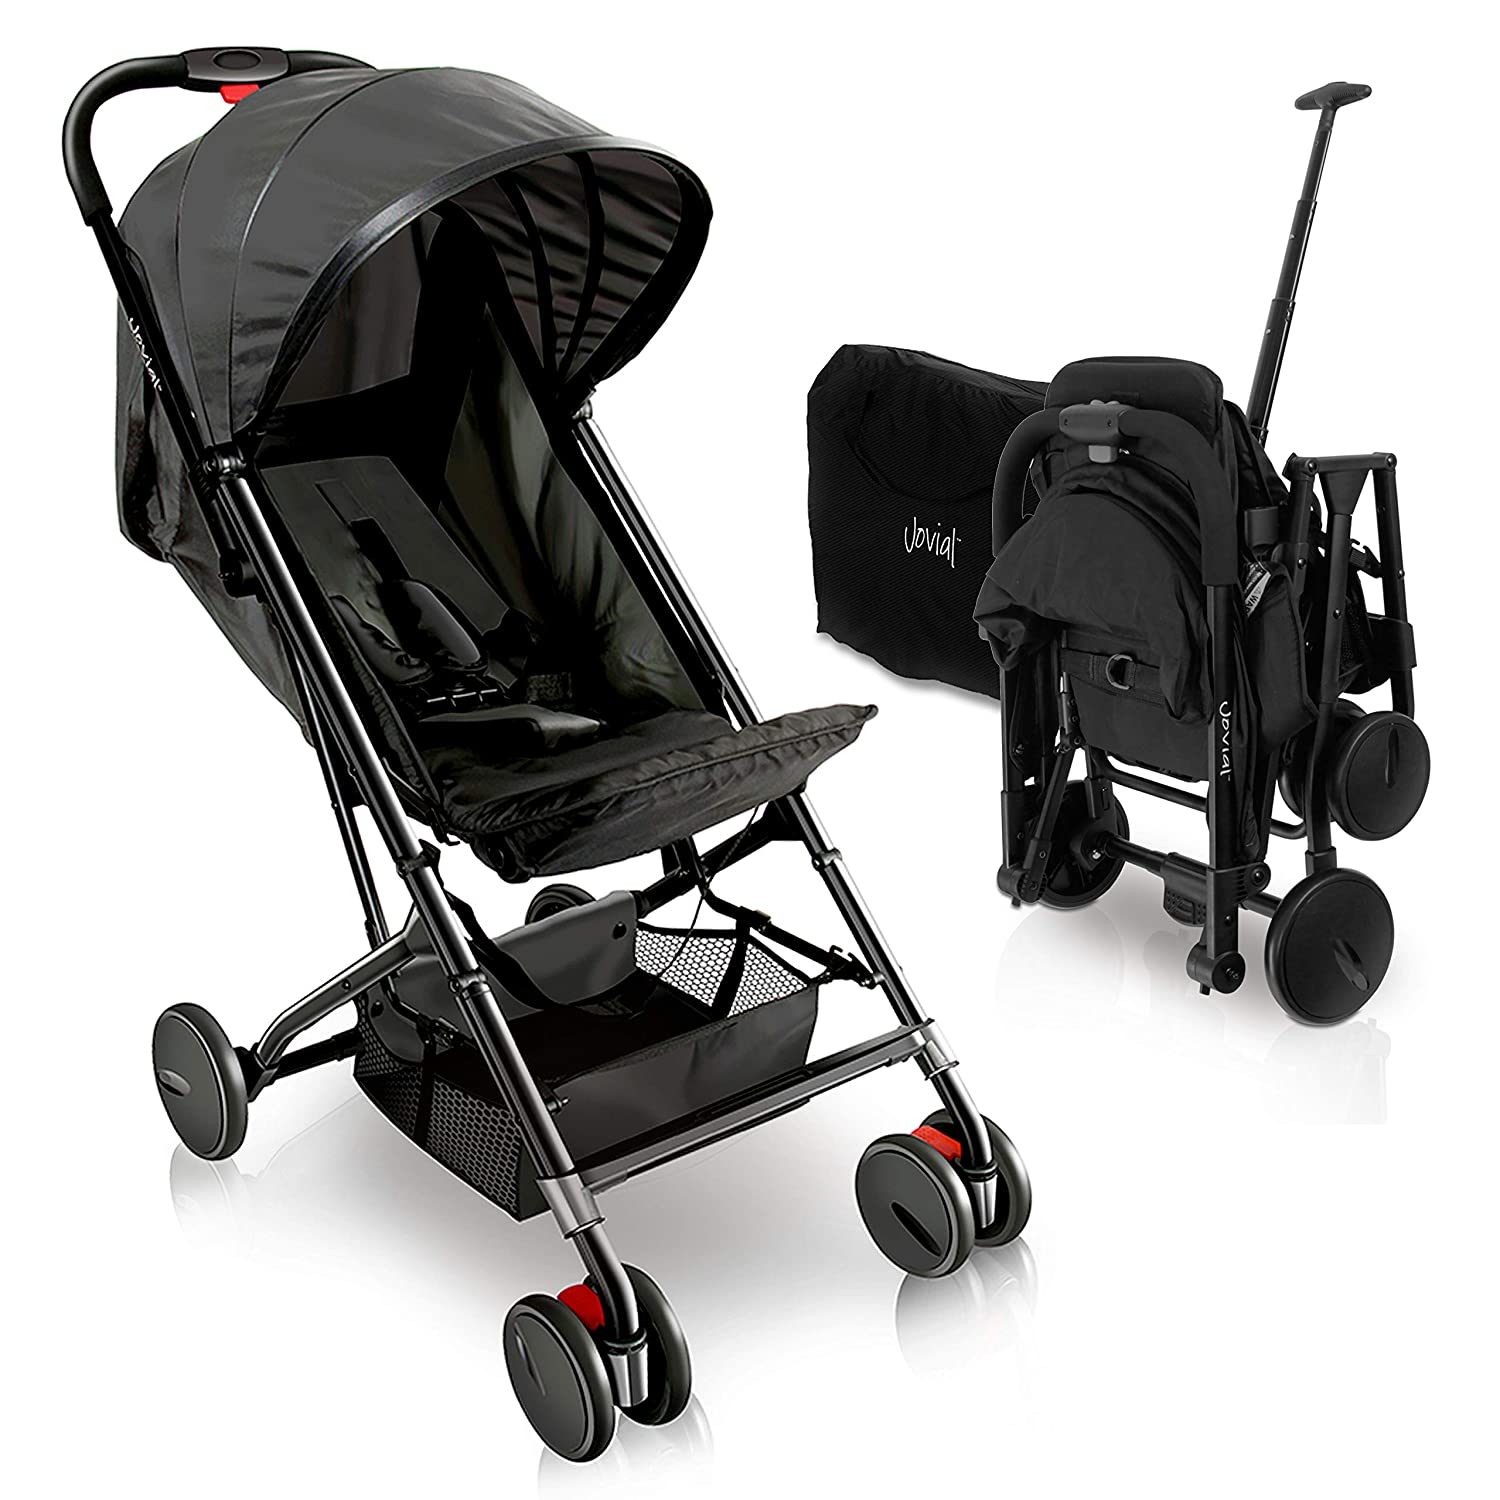 LXJ Stroller,high Landscape,Childrens Trolley with Universal Wheels,Portable Foldable,Compact Travel Trolley,Suitable for Traveling and Shopping,Blue Color : B